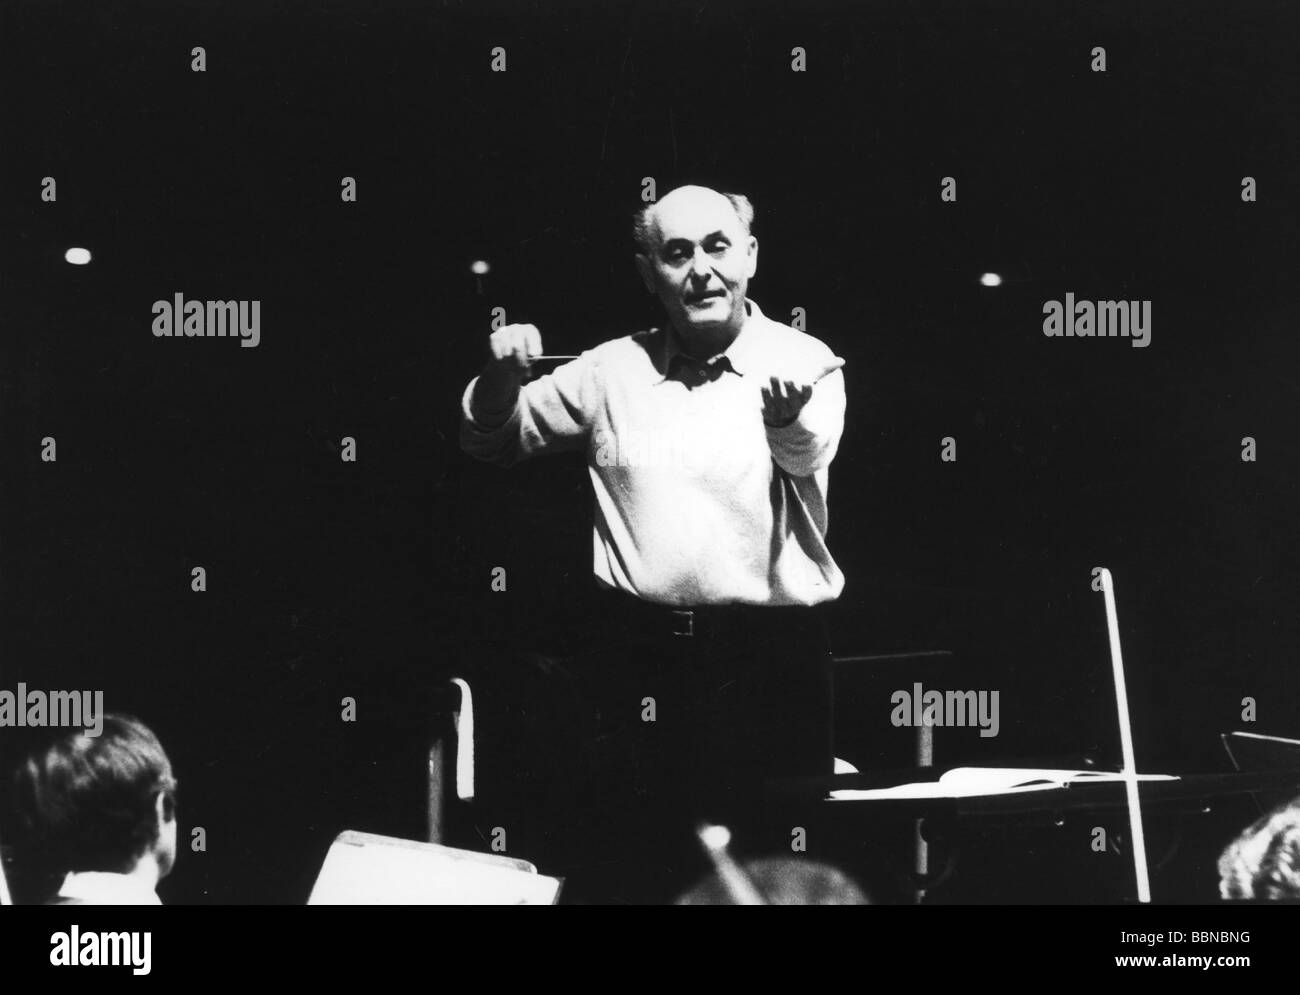 Solti, Georg, 21.10.1912 - 5.9.1997, British conductor of Hungarian origin, half length, during a rehearsal, 1978, - Stock Image